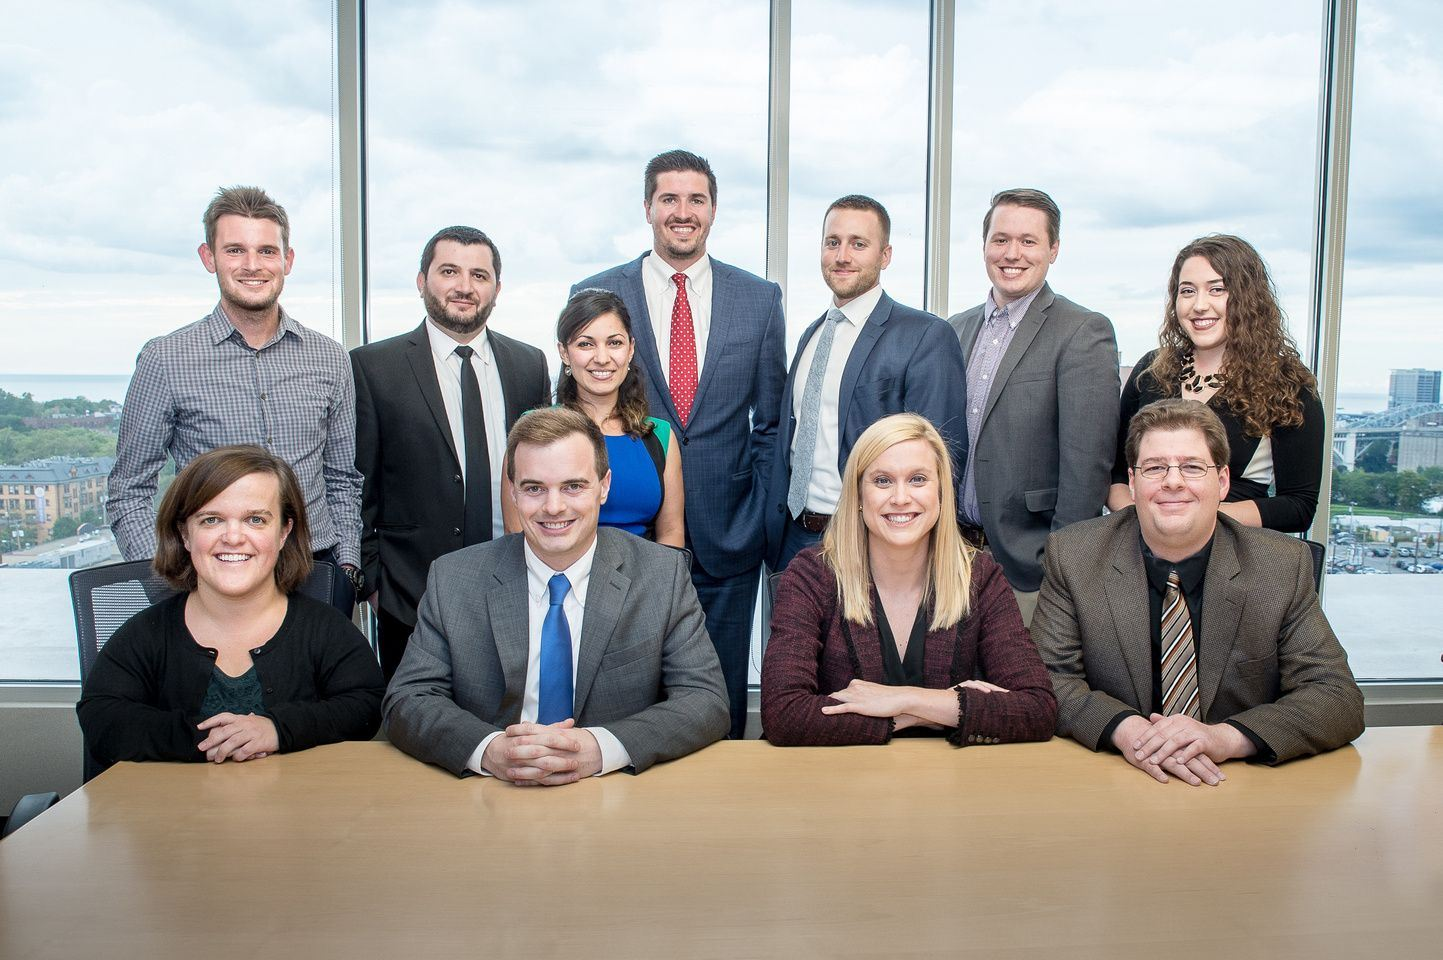 The Cleveland Professional Twenty Thirty Club Board Of Directors